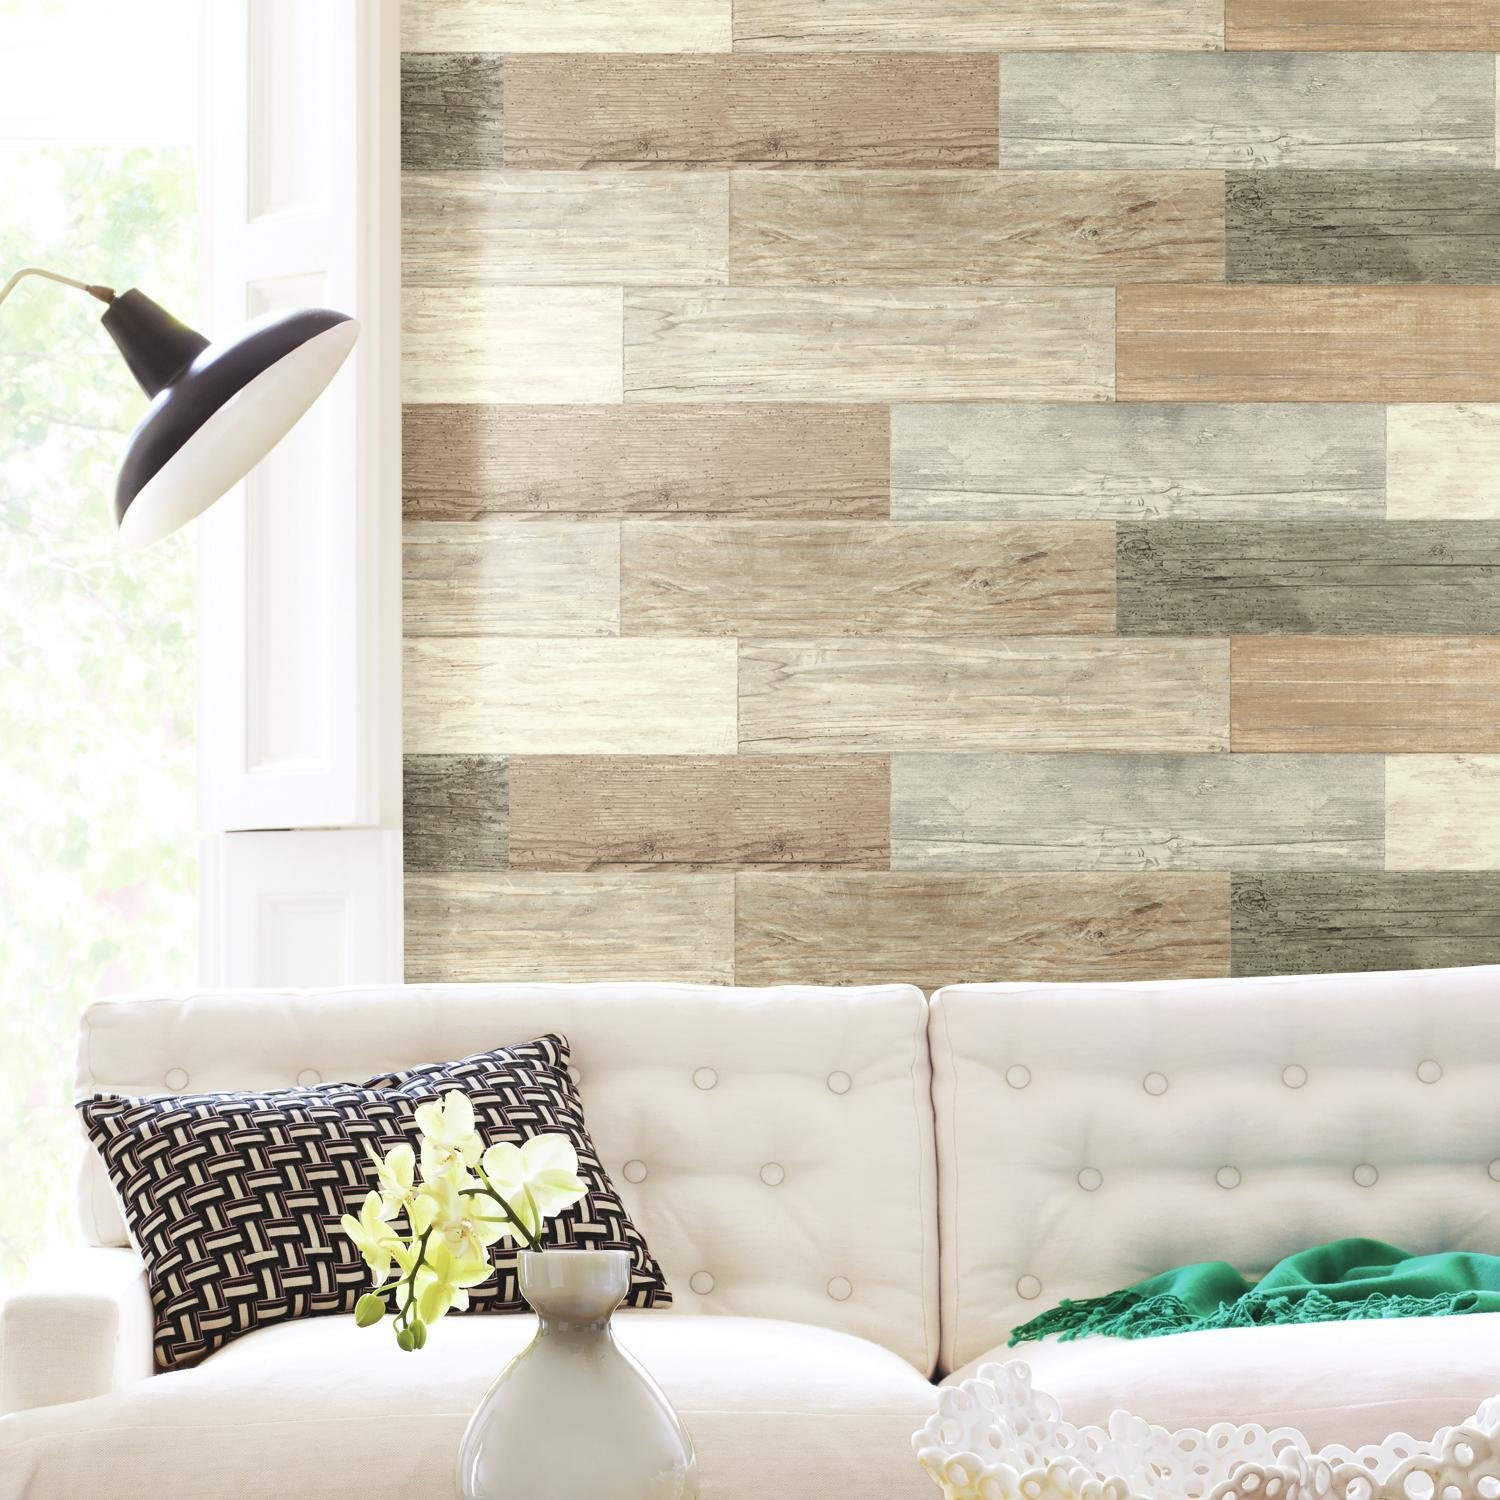 RoomMates RMK3695GM Distressed Barn Wood Plank Peel and Stick Giant Wall Decals, 17.25 X 36.5, Multi-Colored